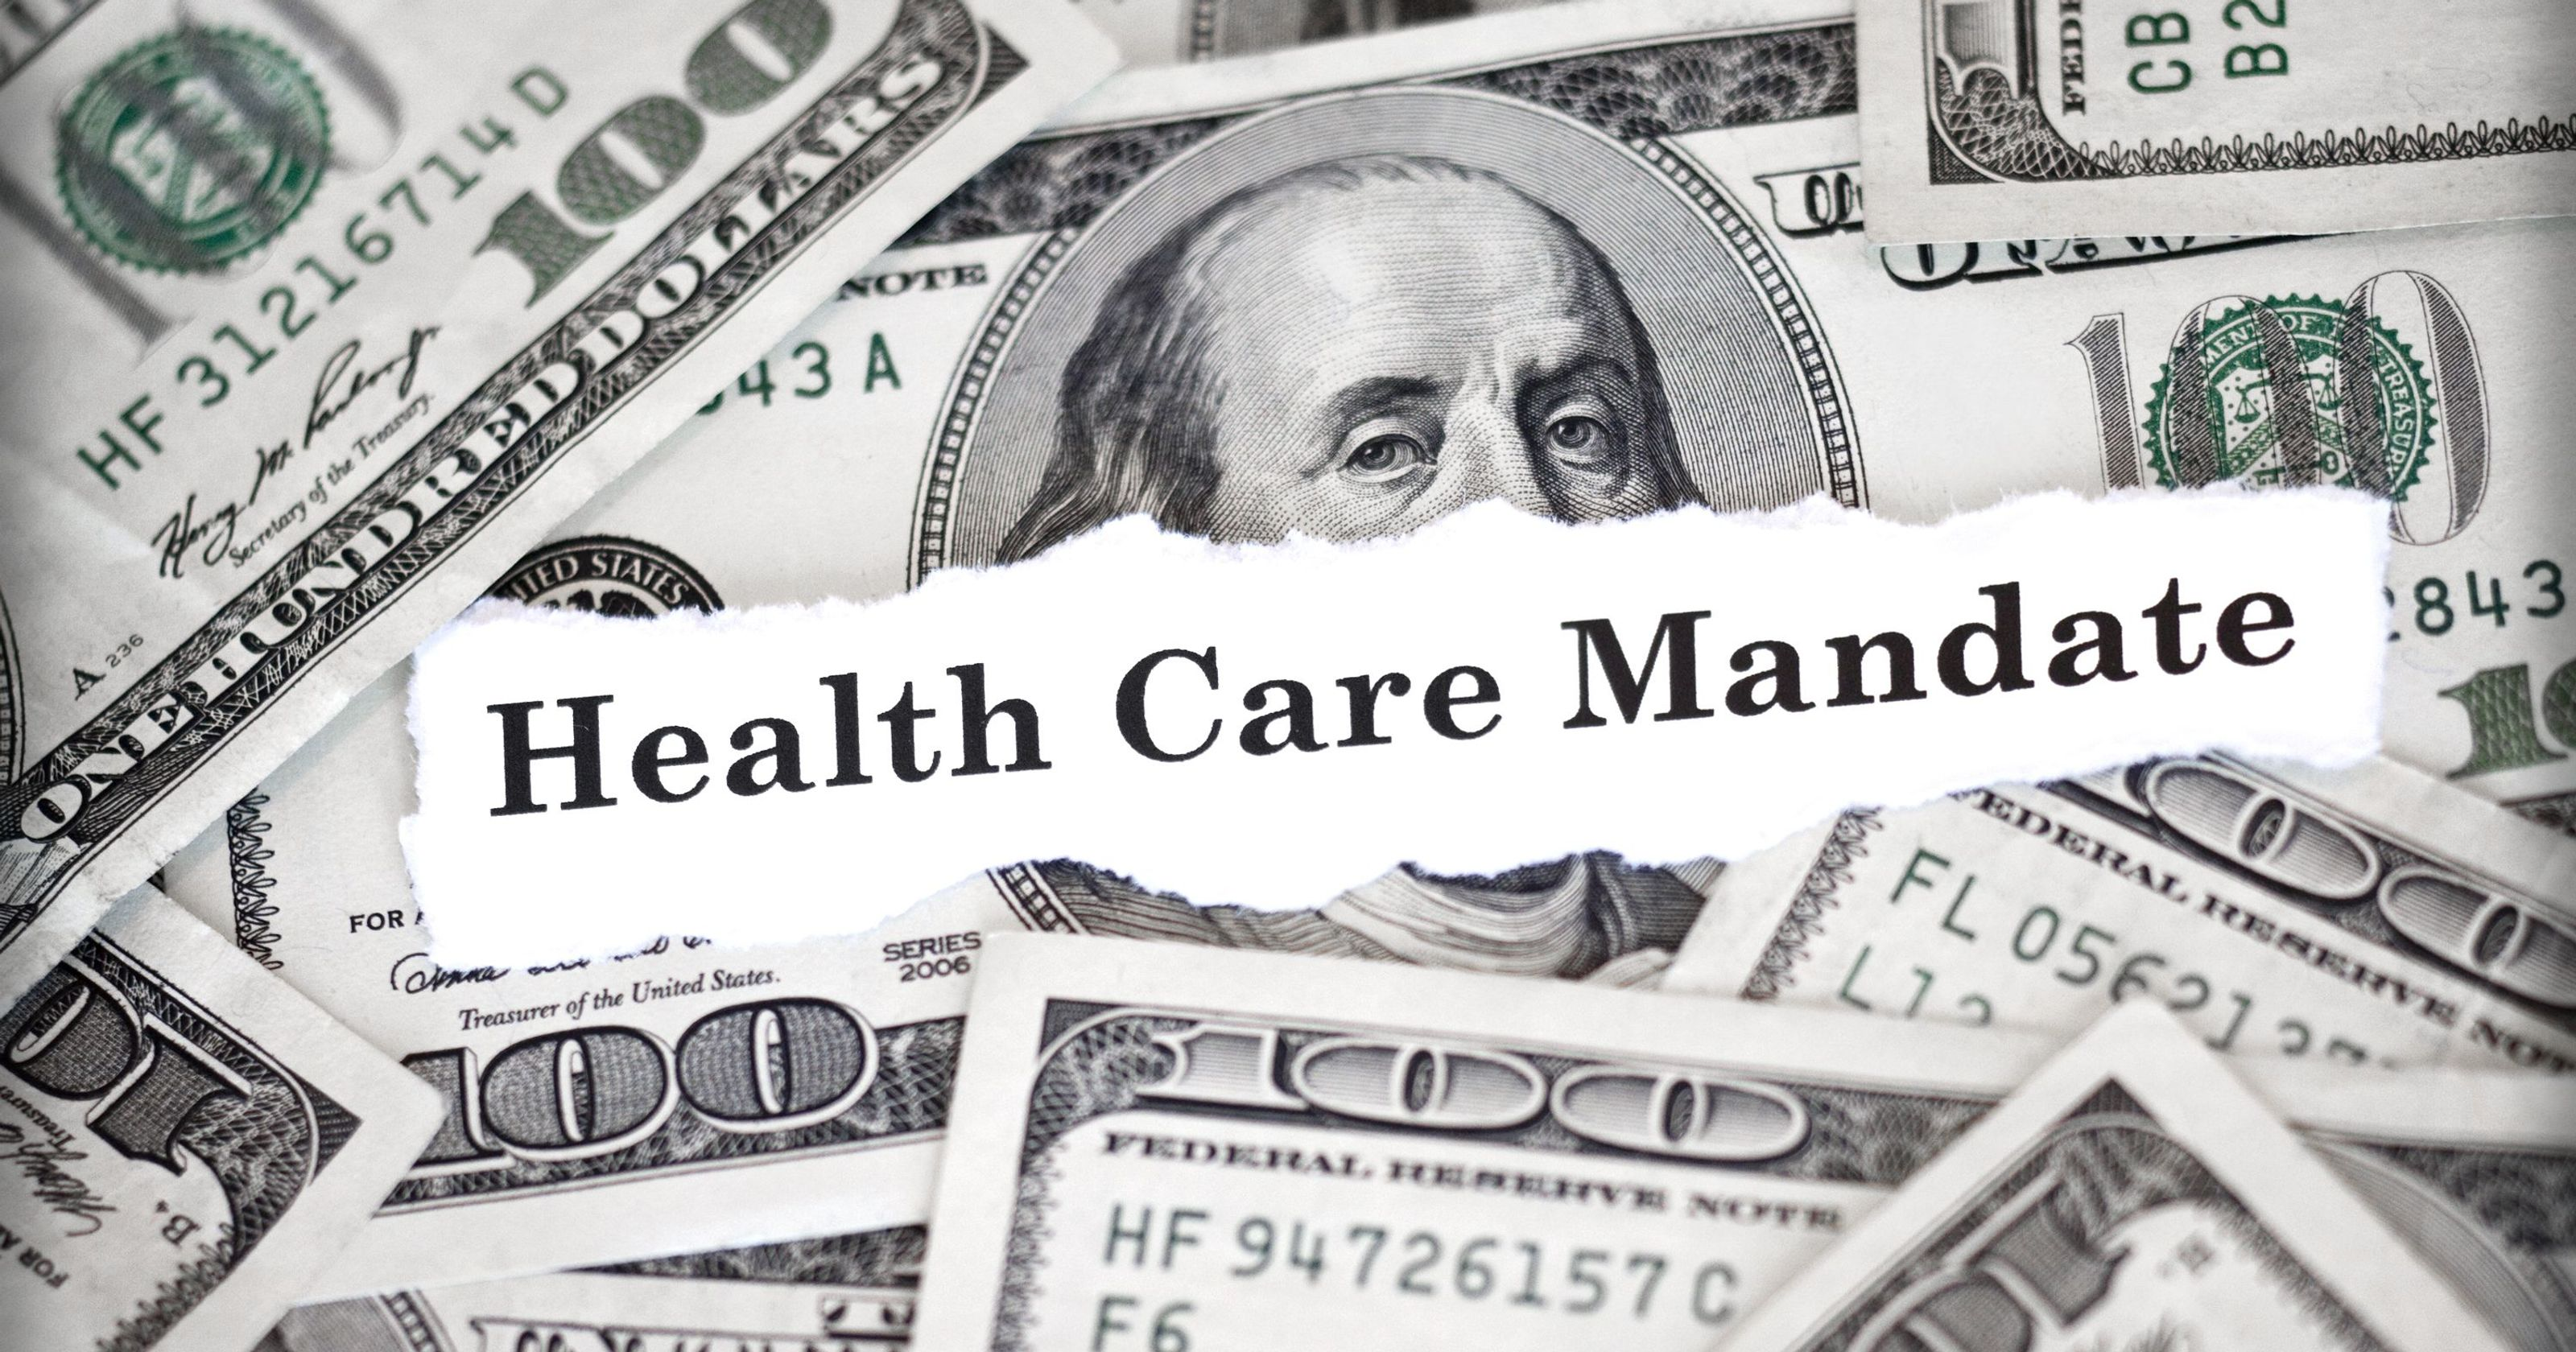 New Jersey (NJ) enacts a health care individual mandate in 2019.